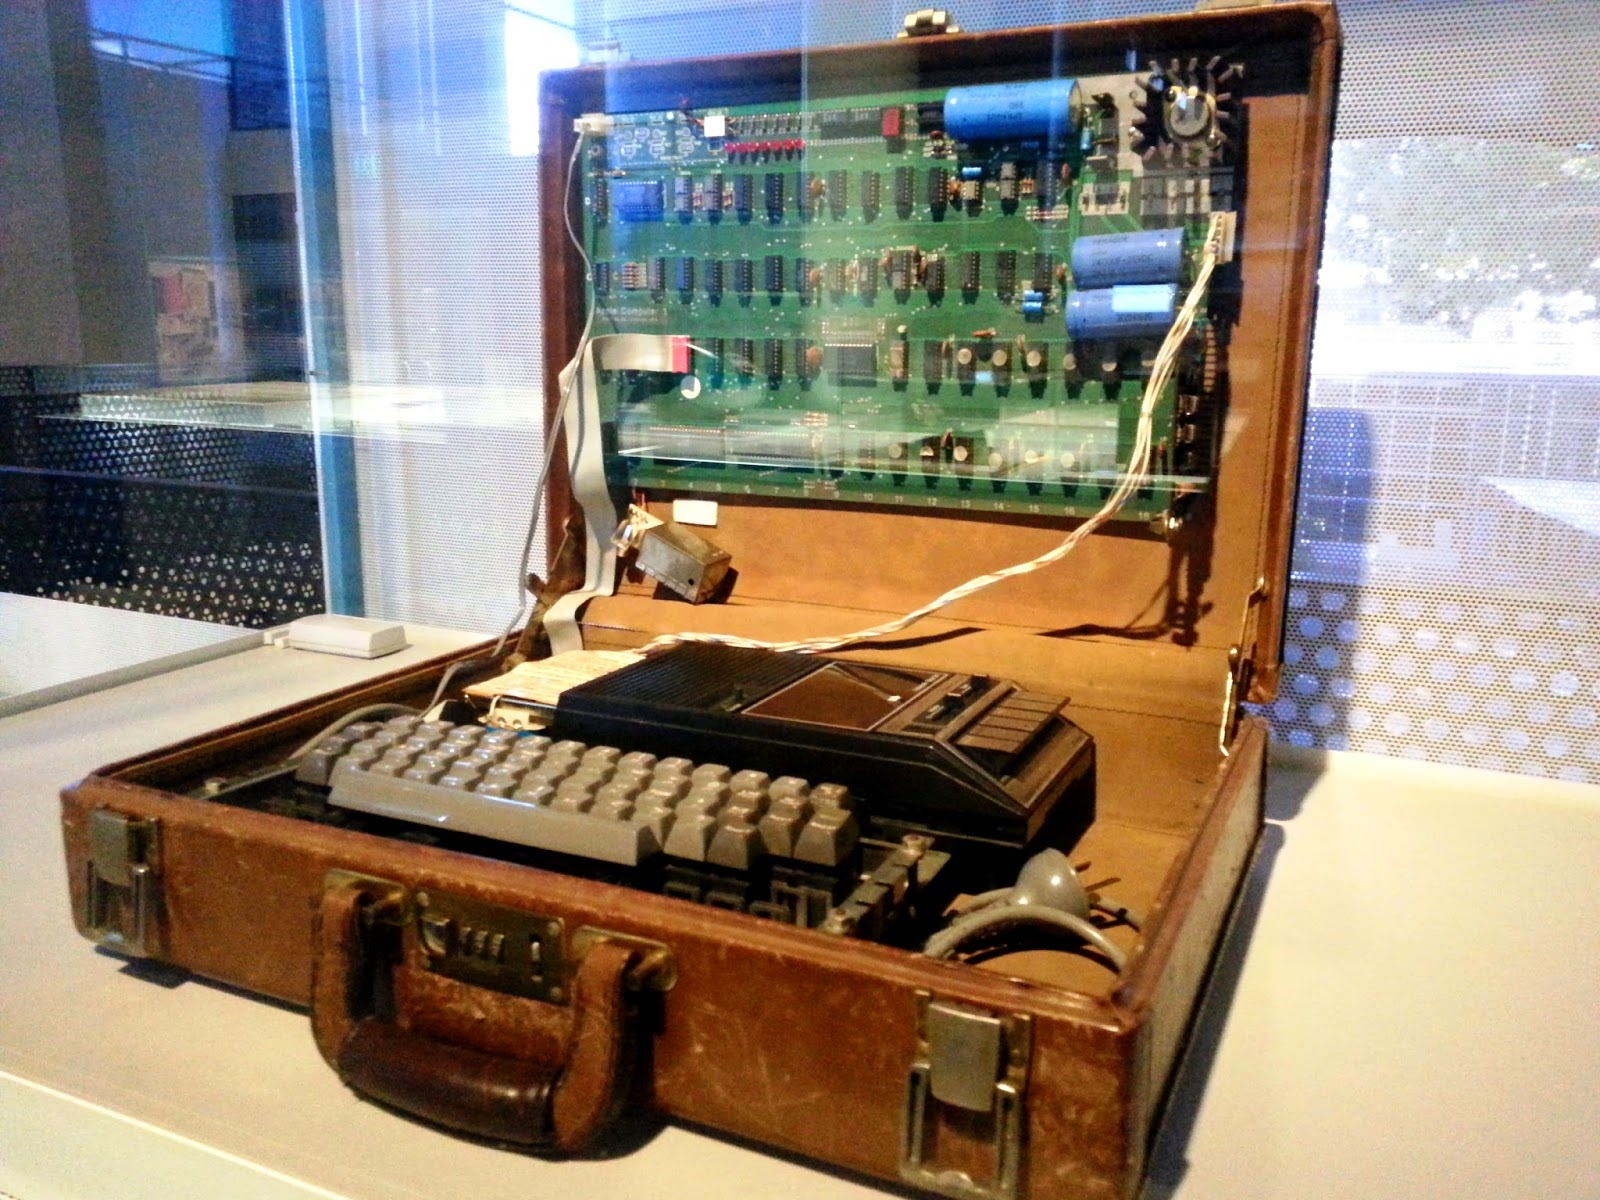 An original Apple 1976 personal computer on display in the Powerhouse Museum.